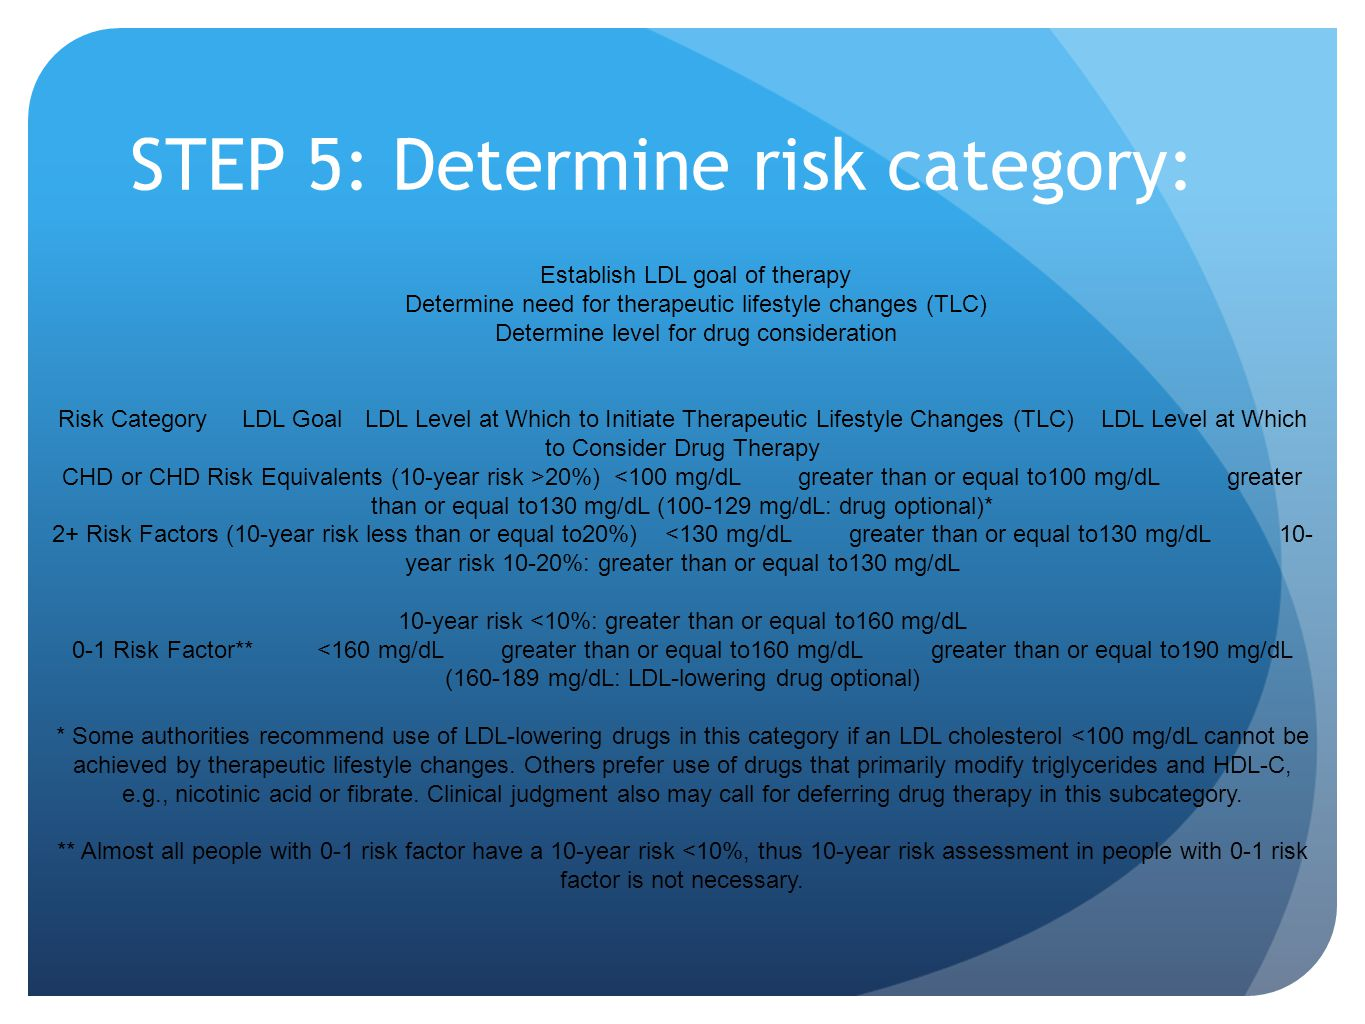 STEP 5: Determine risk category: